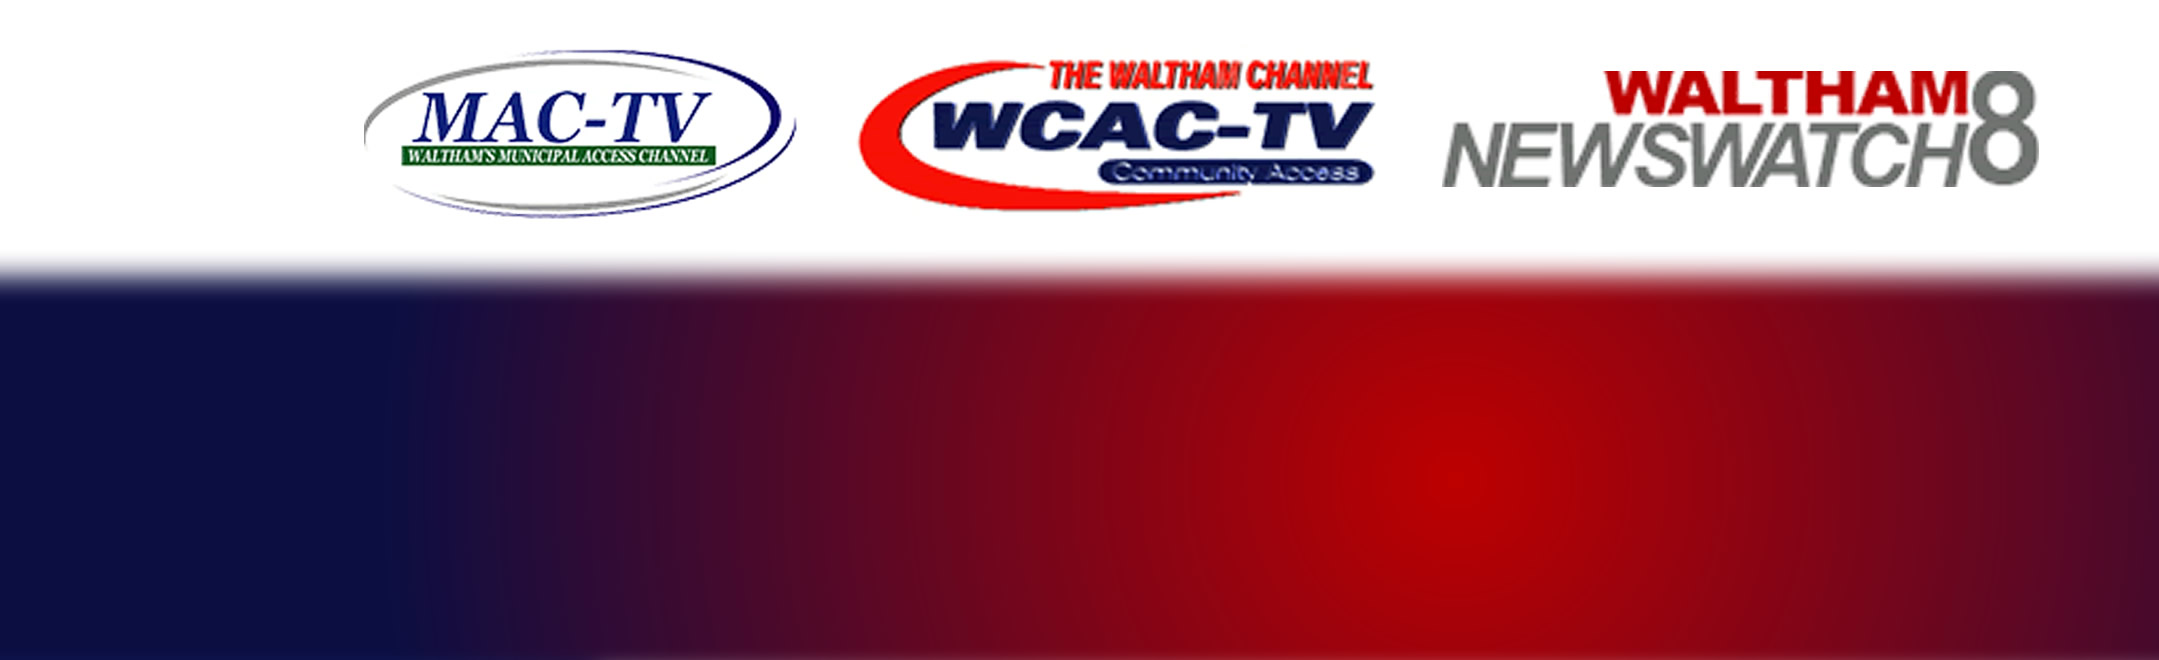 Waltham Community Access Corp, WCAC-TV, MAC-TV, Newswatch8